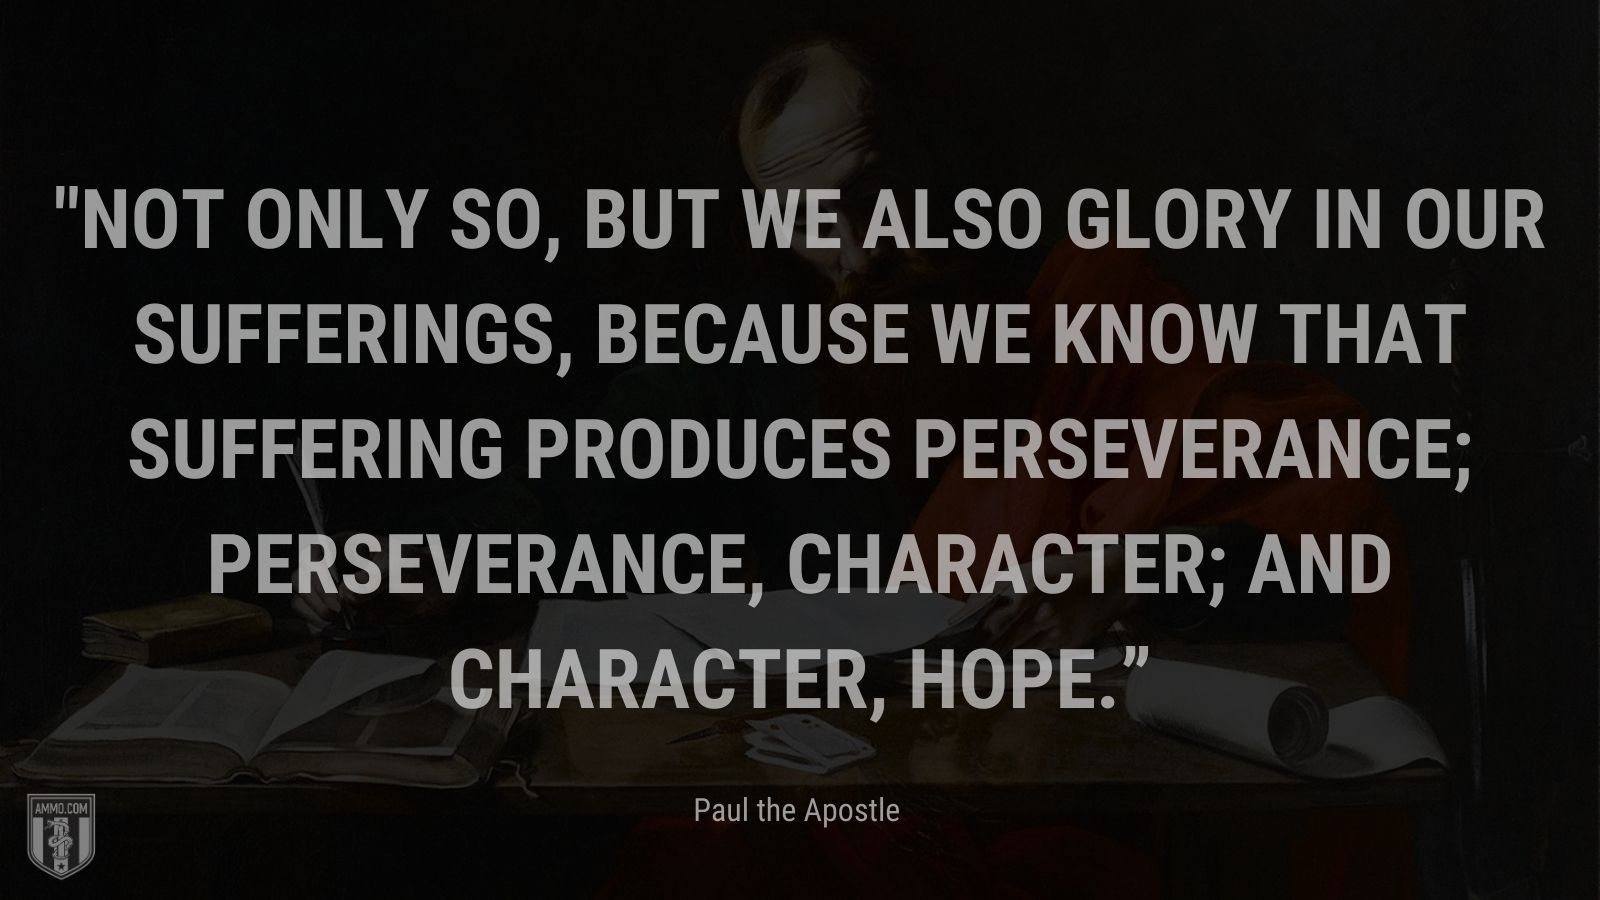 """""""Not only so, but we also glory in our sufferings, because we know that suffering produces perseverance; perseverance, character; and character, hope."""" - Paul the Apostle"""